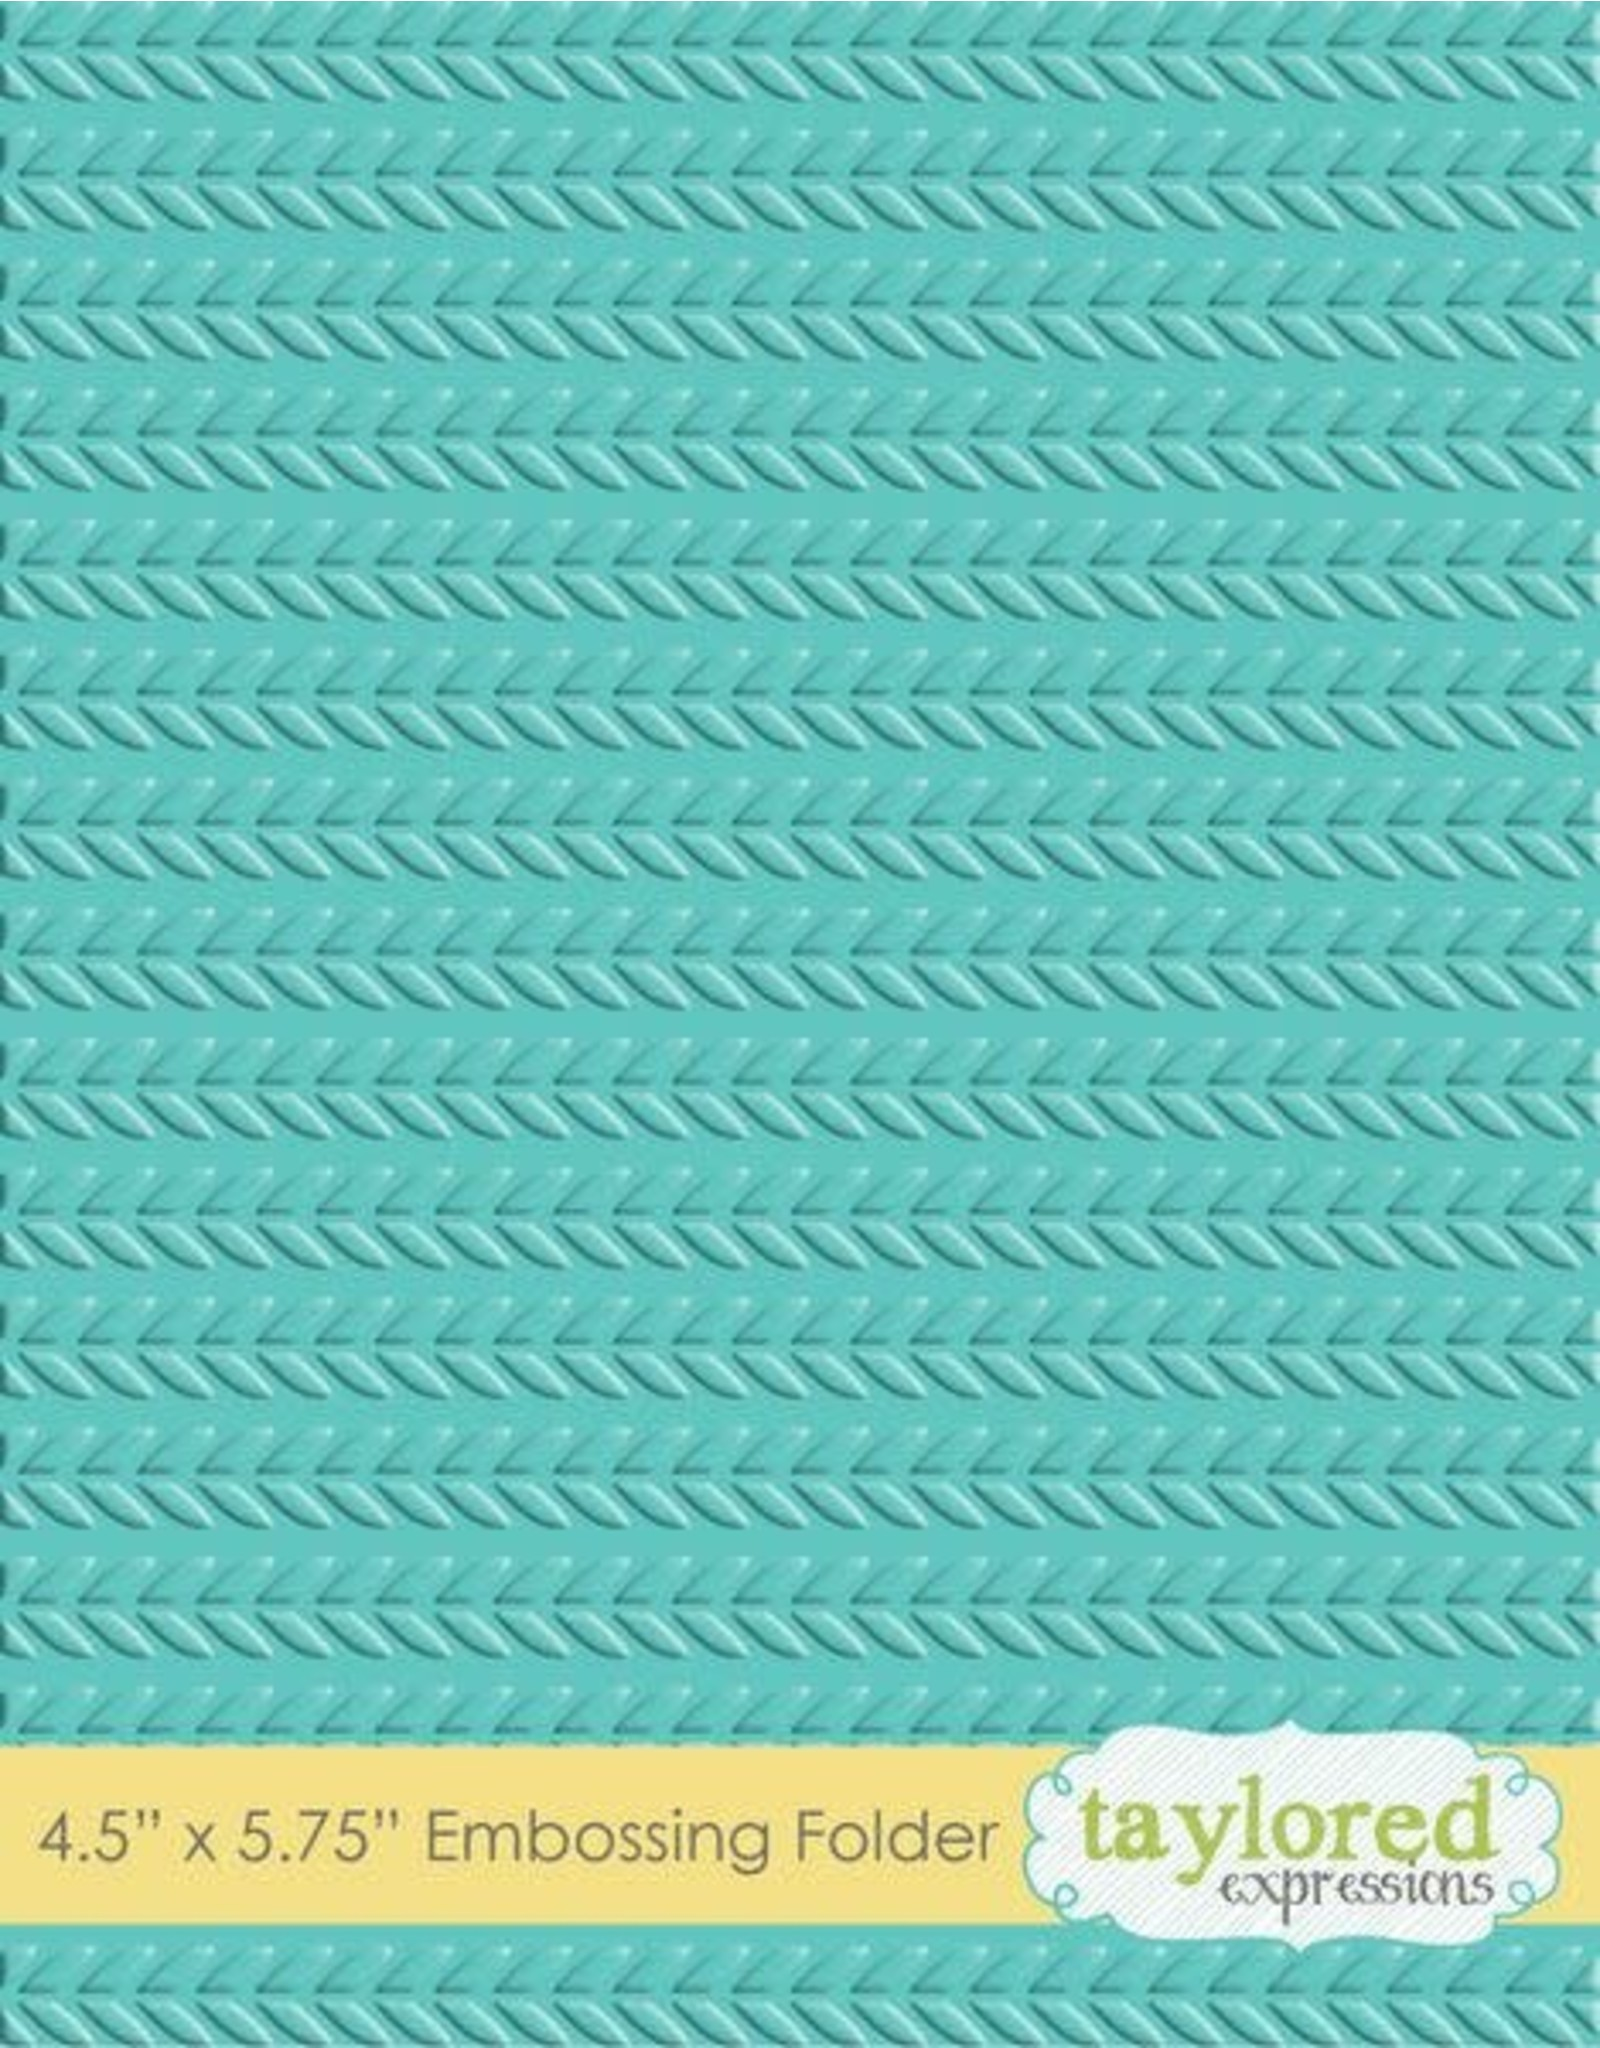 Taylored Expressions Cable Knit - Embossing Folder